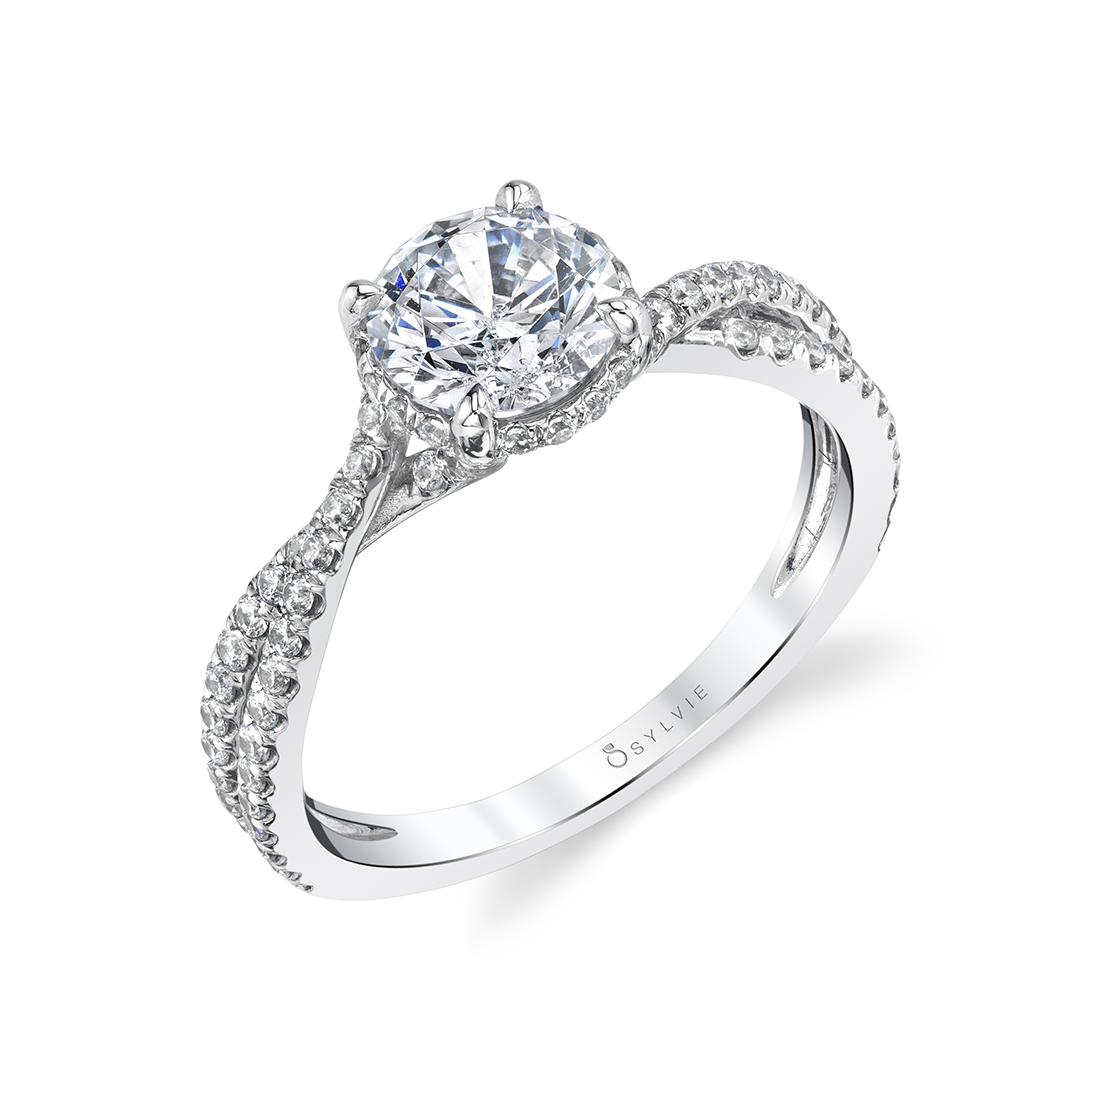 Hidden Halo Engagement Ring in White Gold - S1845 - Mia